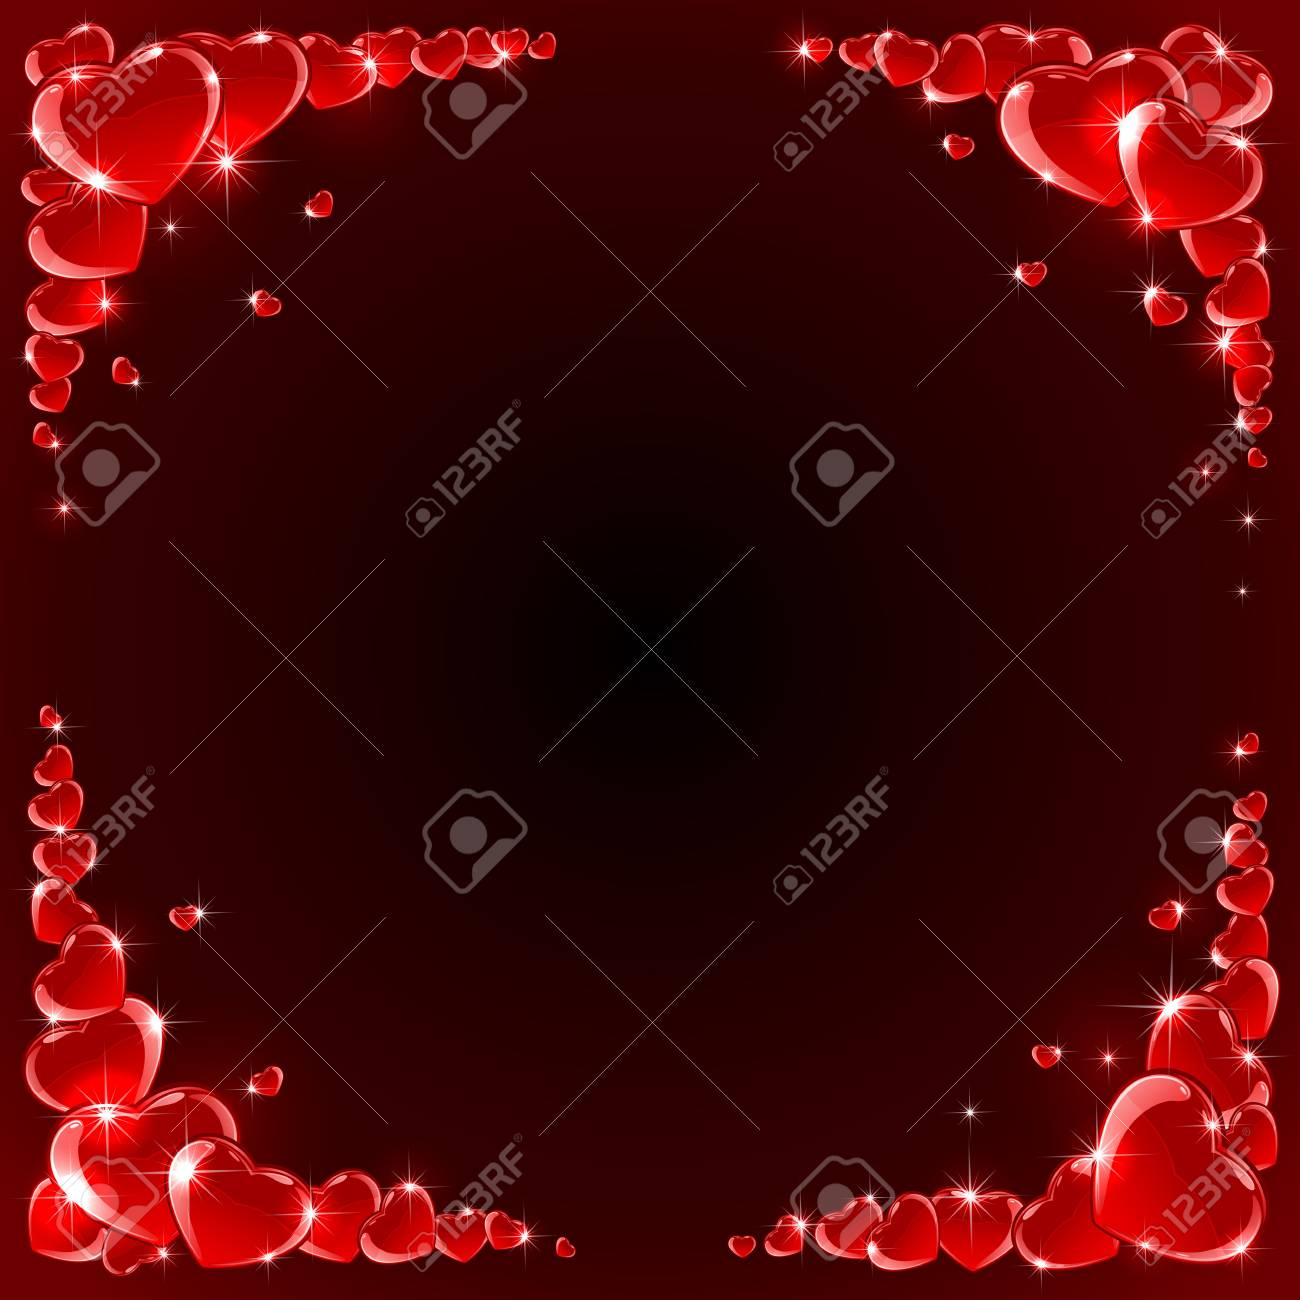 Valentines background with Hearts, illustration Stock Vector - 13489220